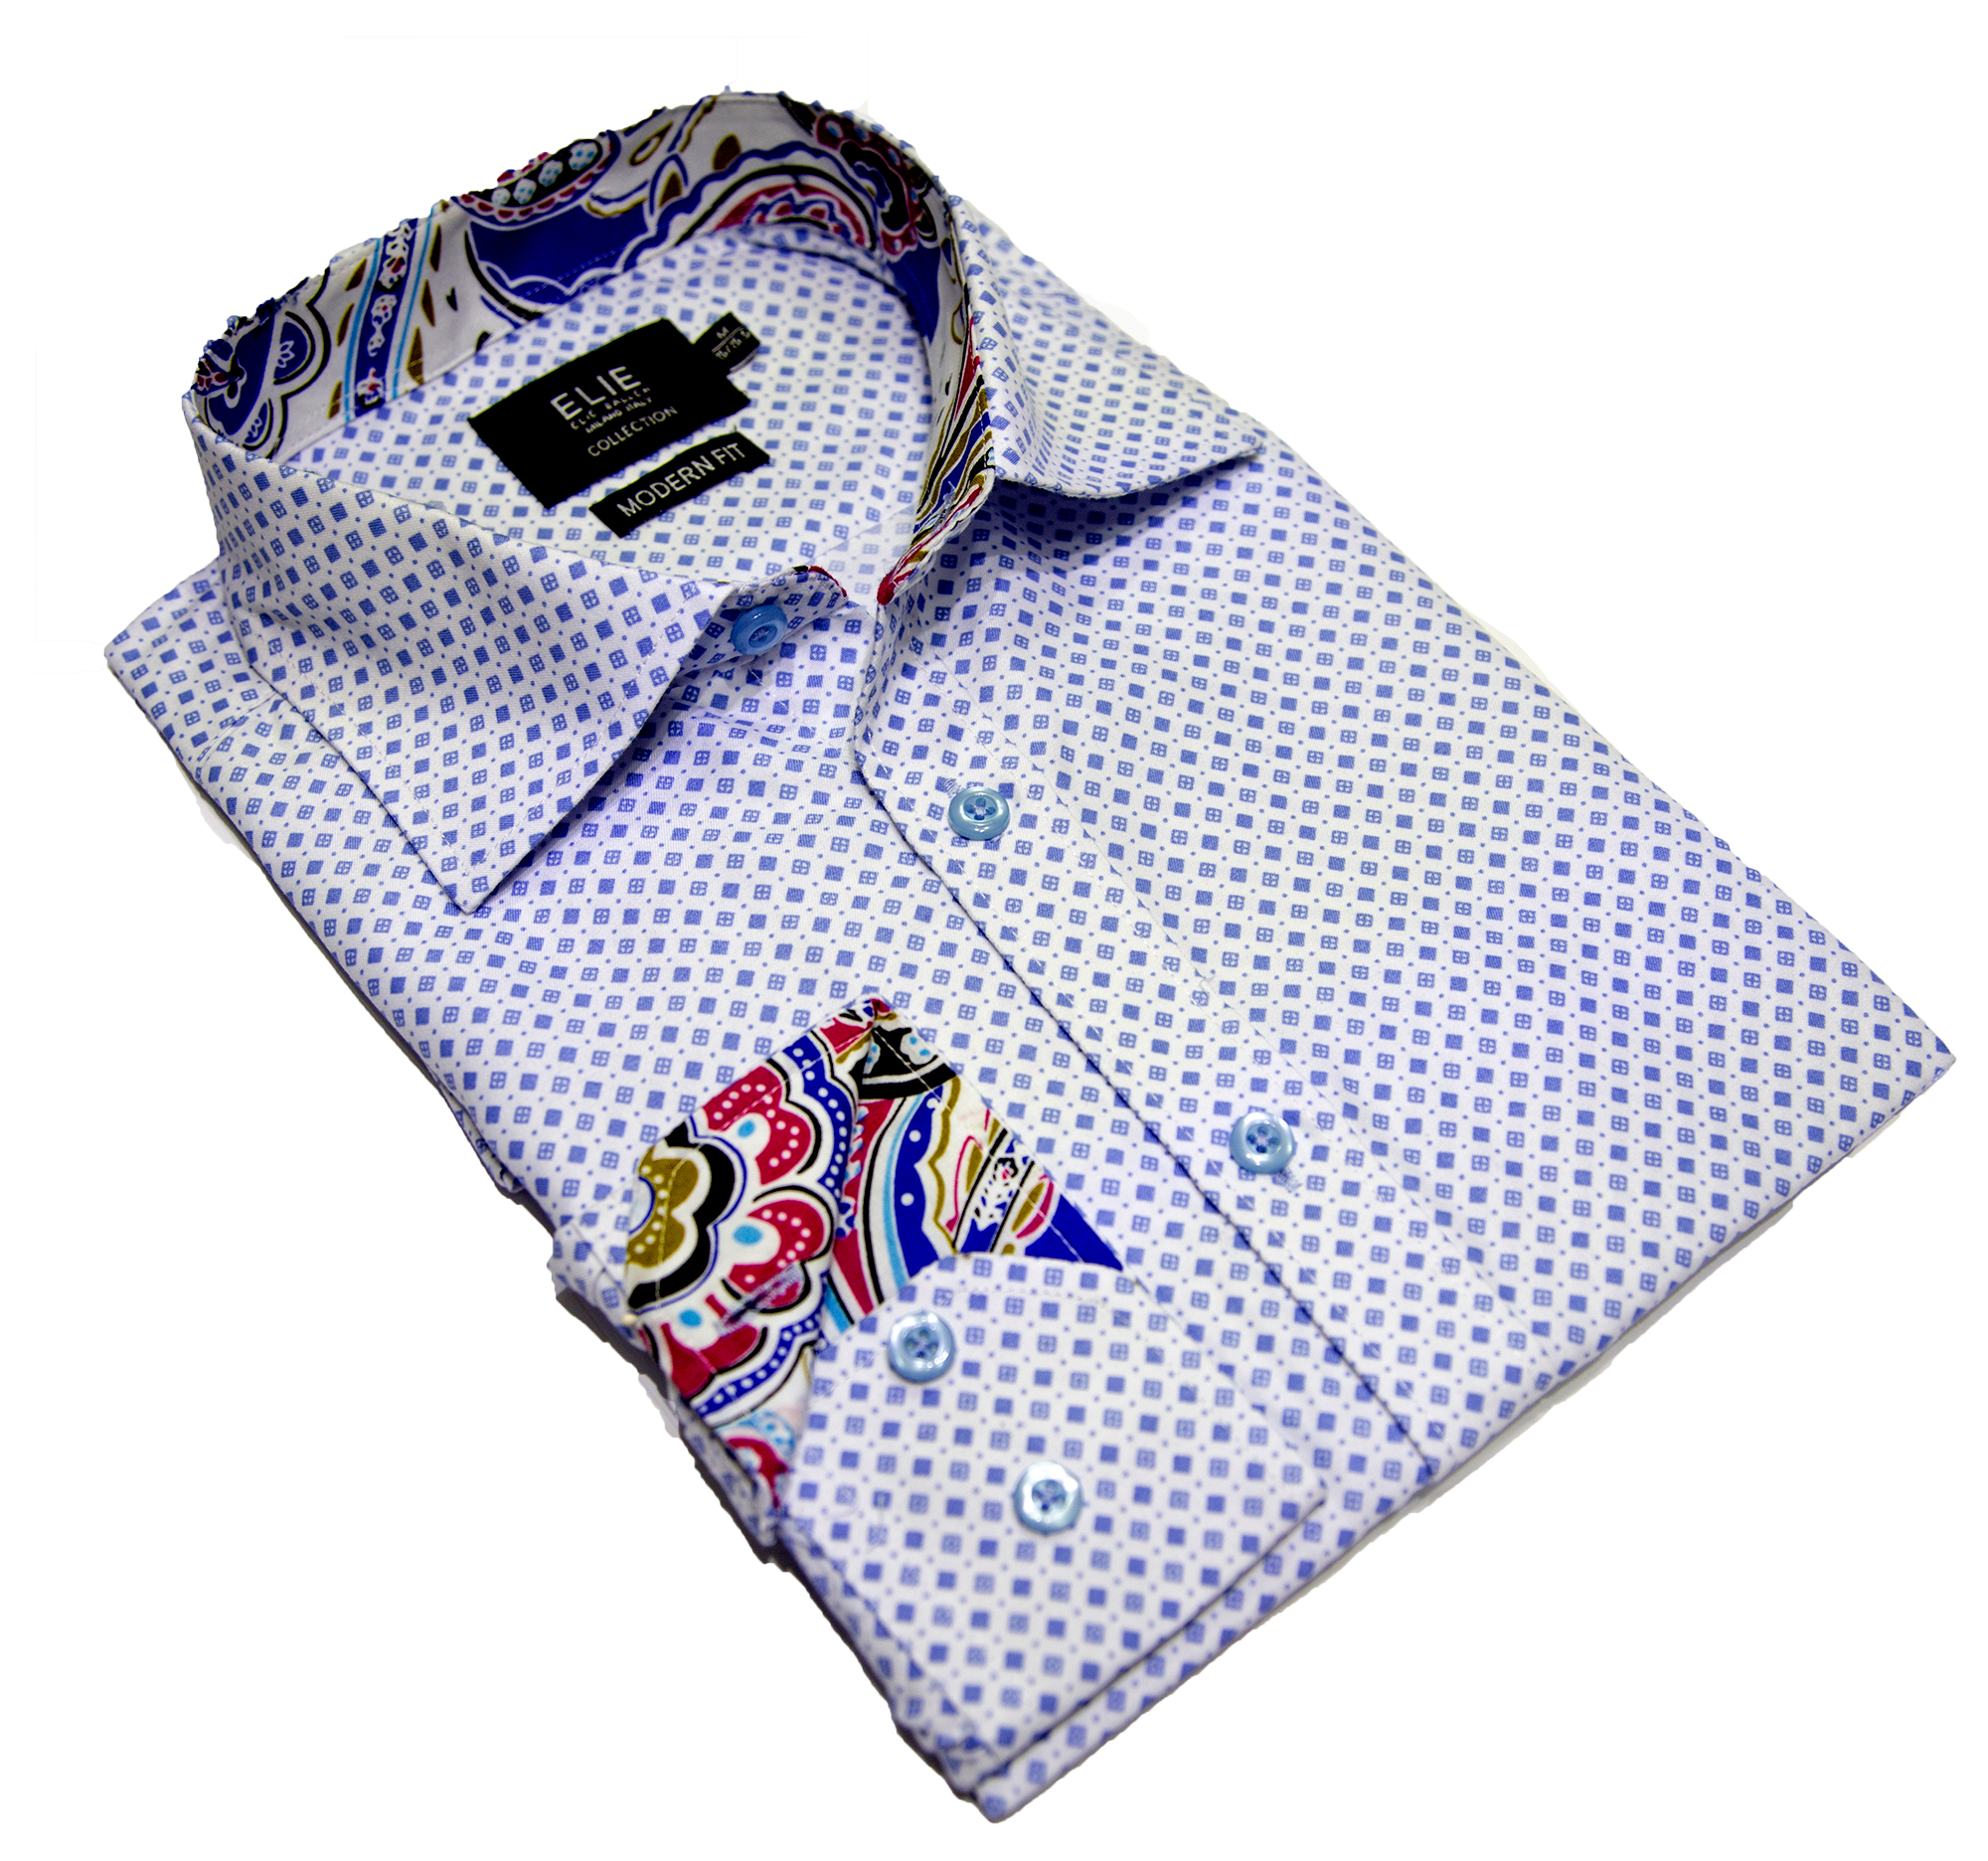 Diamond Grid Men's Shirts/Button Down CEBSH324M